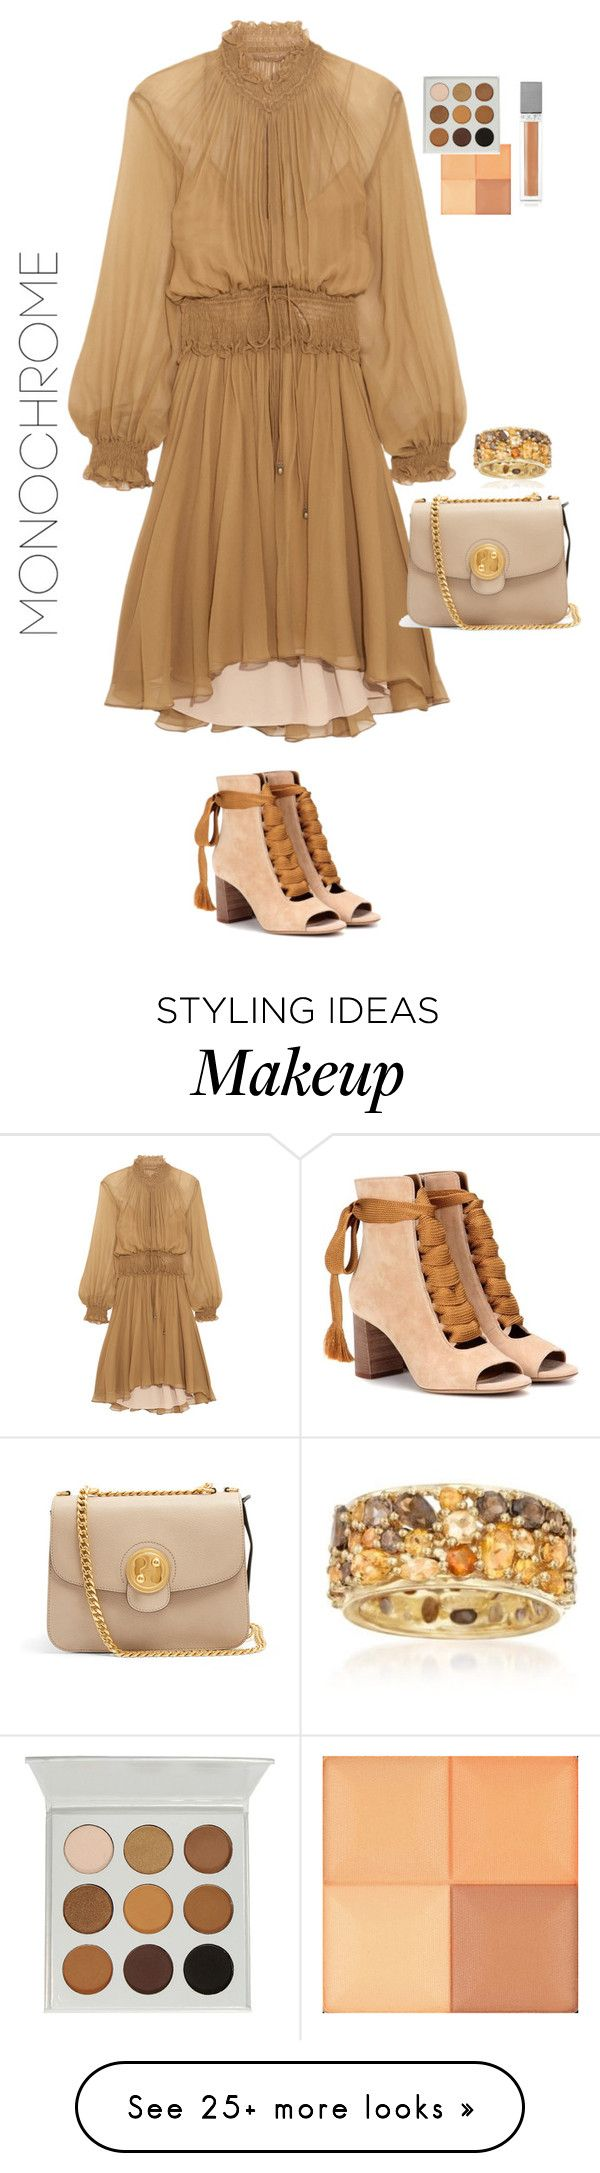 """""""Untitled #510"""" by stephanie-visconti on Polyvore featuring Chloé, Ross-Simons, Givenchy, Sisley and monochrome"""